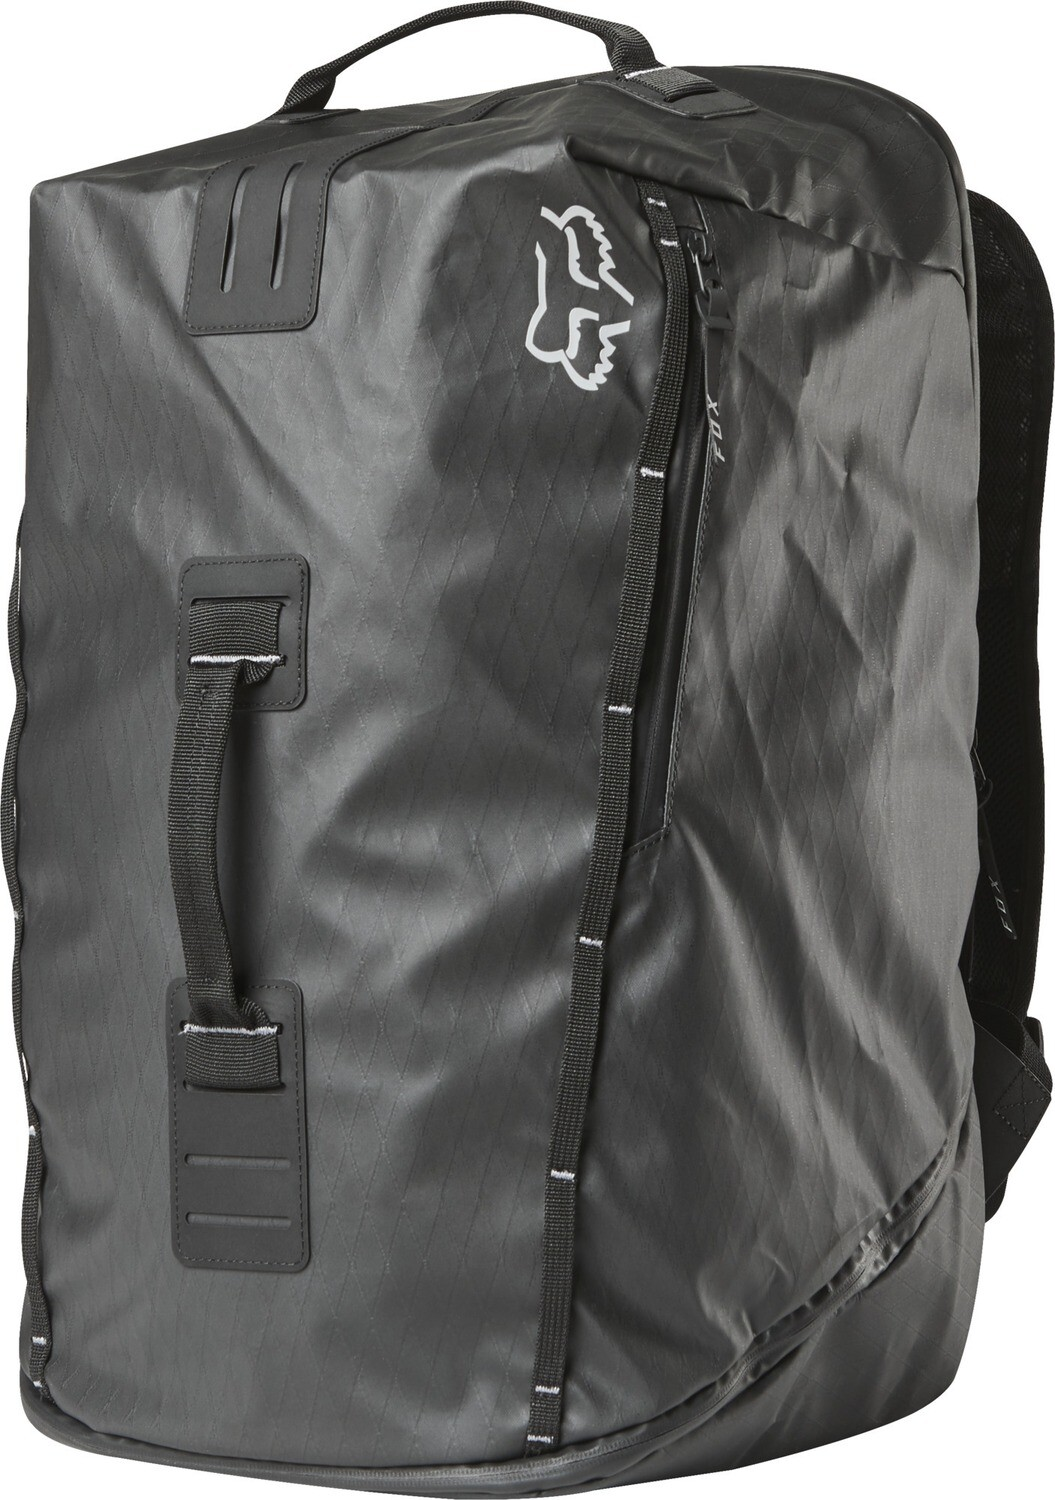 MOCHILA DUFFLE TRANSITION